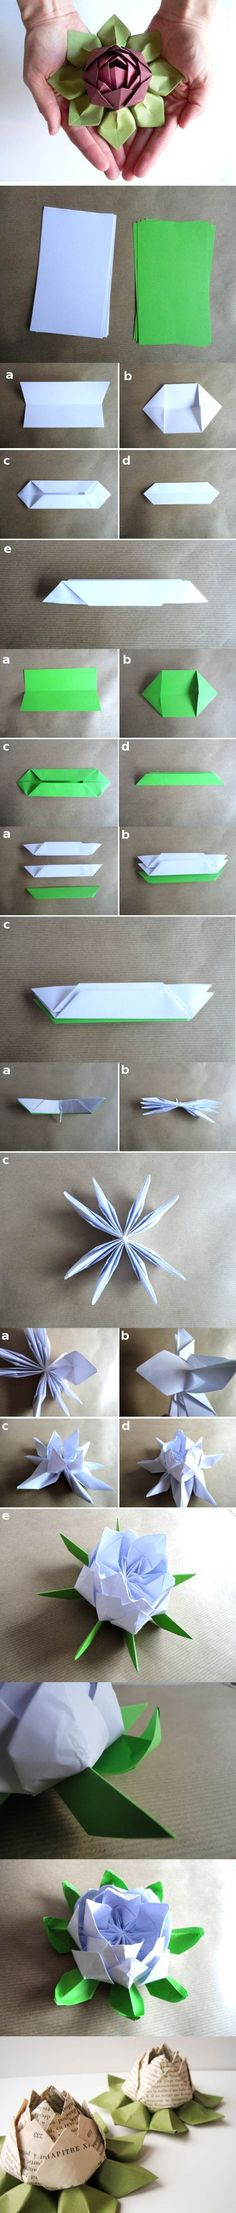 DIY Origami Lotus Flower | iCreativeIdeas.com